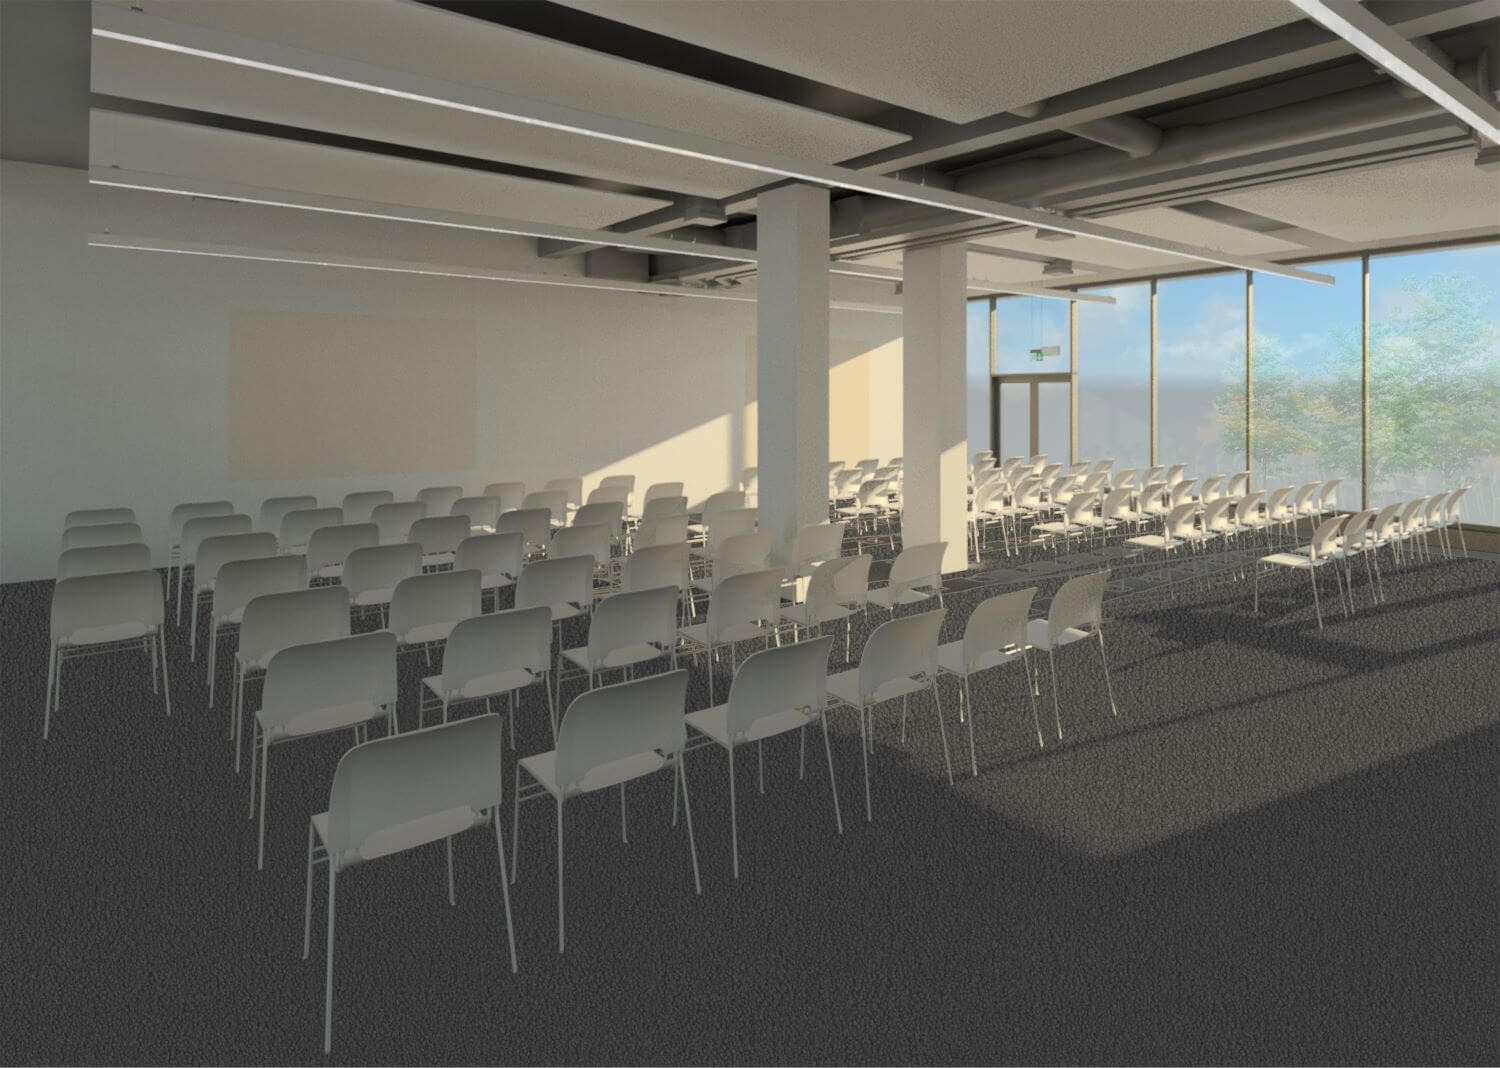 Event Space - resized copy